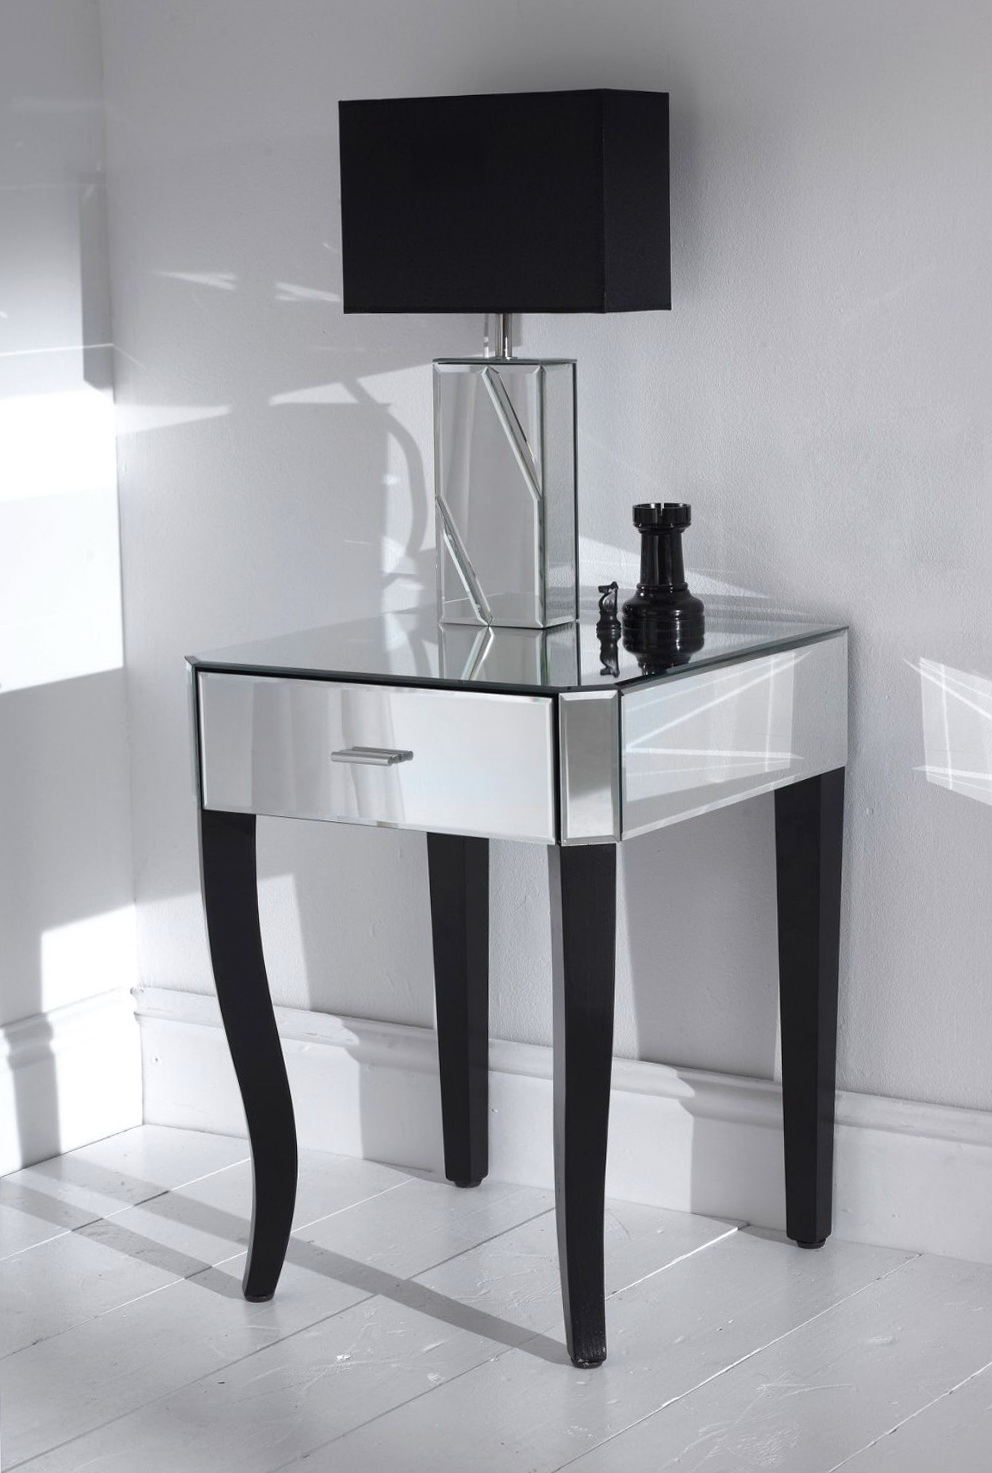 Mirrored End Tables Toronto